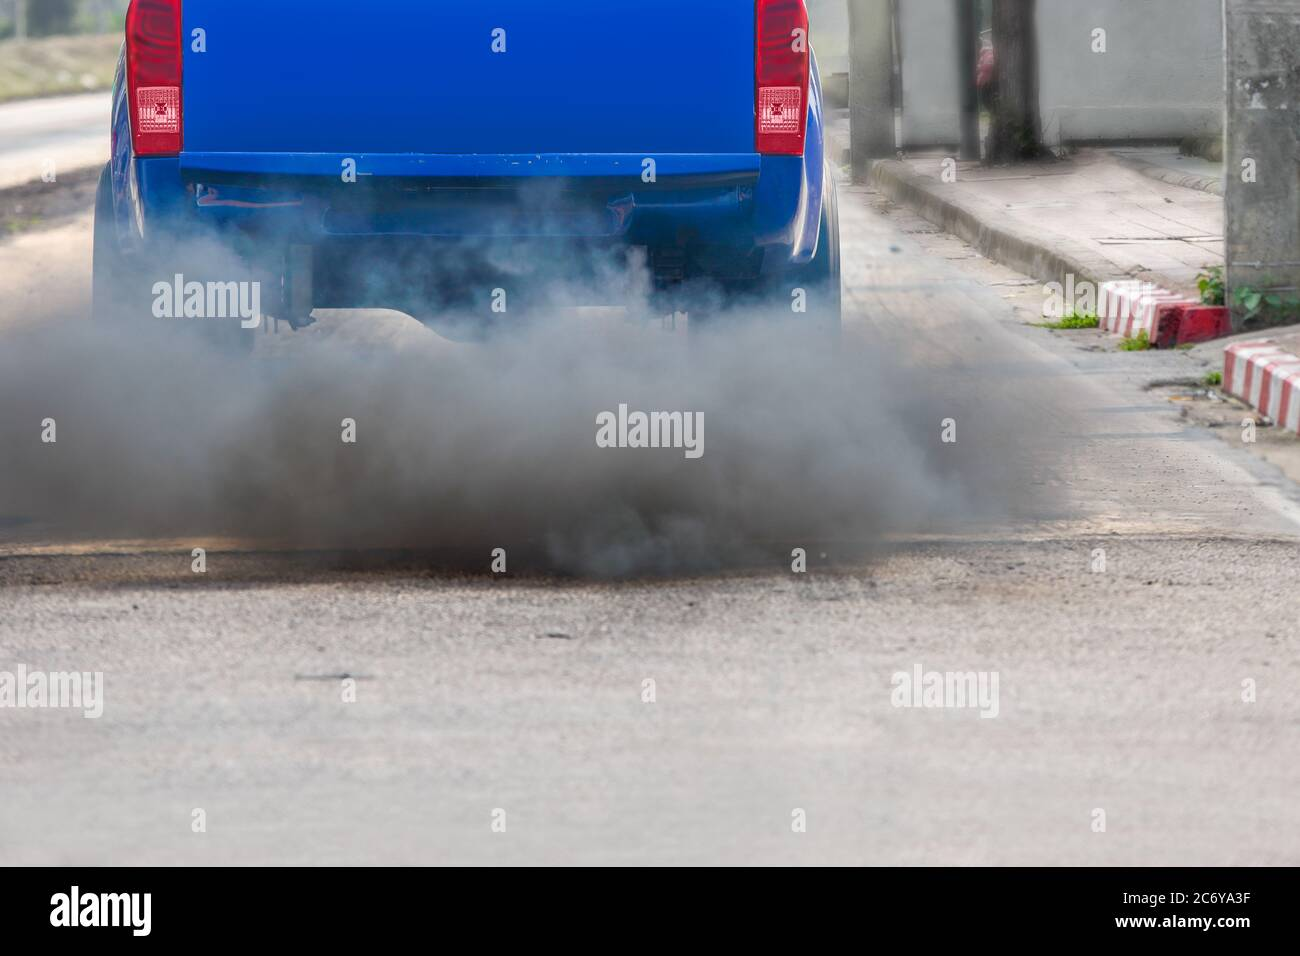 air pollution crisis in city from diesel vehicle exhaust pipe on road Stock Photo